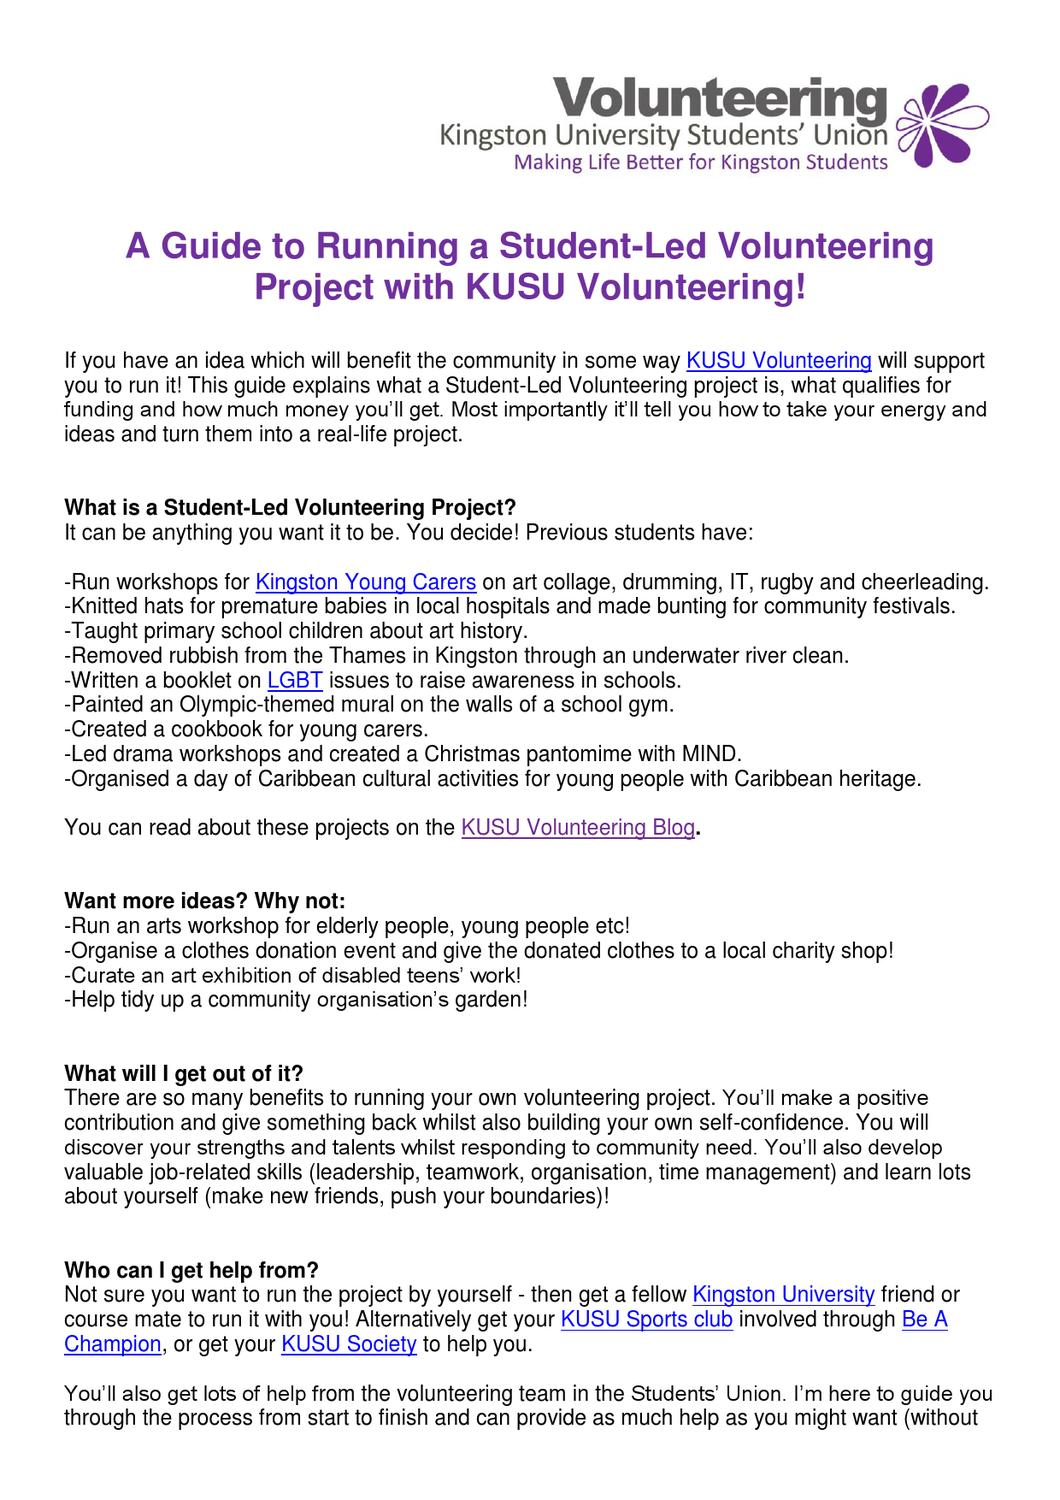 Guide to running a student led volunteering project by lauren stopps guide to running a student led volunteering project by lauren stopps issuu solutioingenieria Images